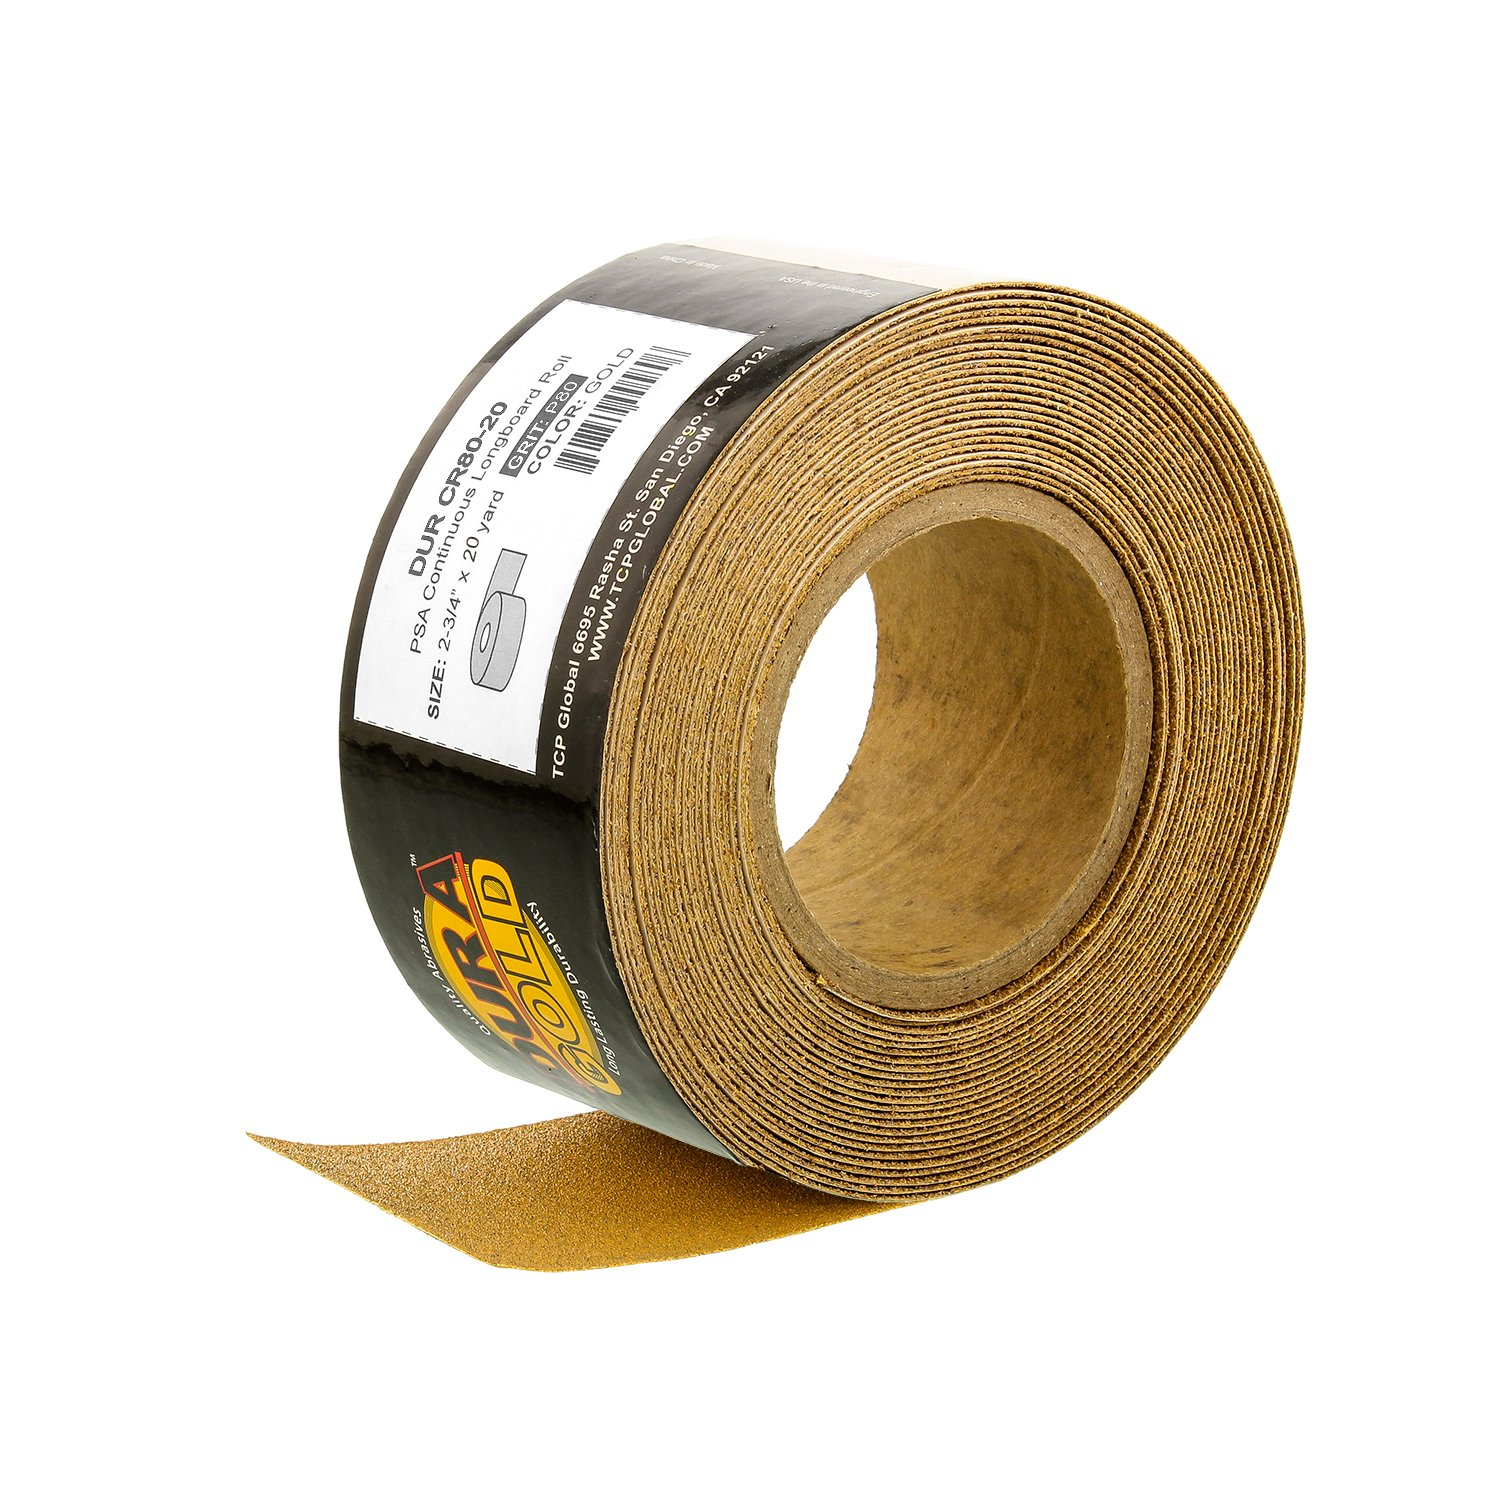 Dura-Gold - Premium - 80 Grit Gold - Longboard Continuous Roll 20 Yards long by 2-3/4'' wide PSA Self Adhesive Stickyback Longboard Sandpaper for Automotive and Woodworking by Dura-Gold